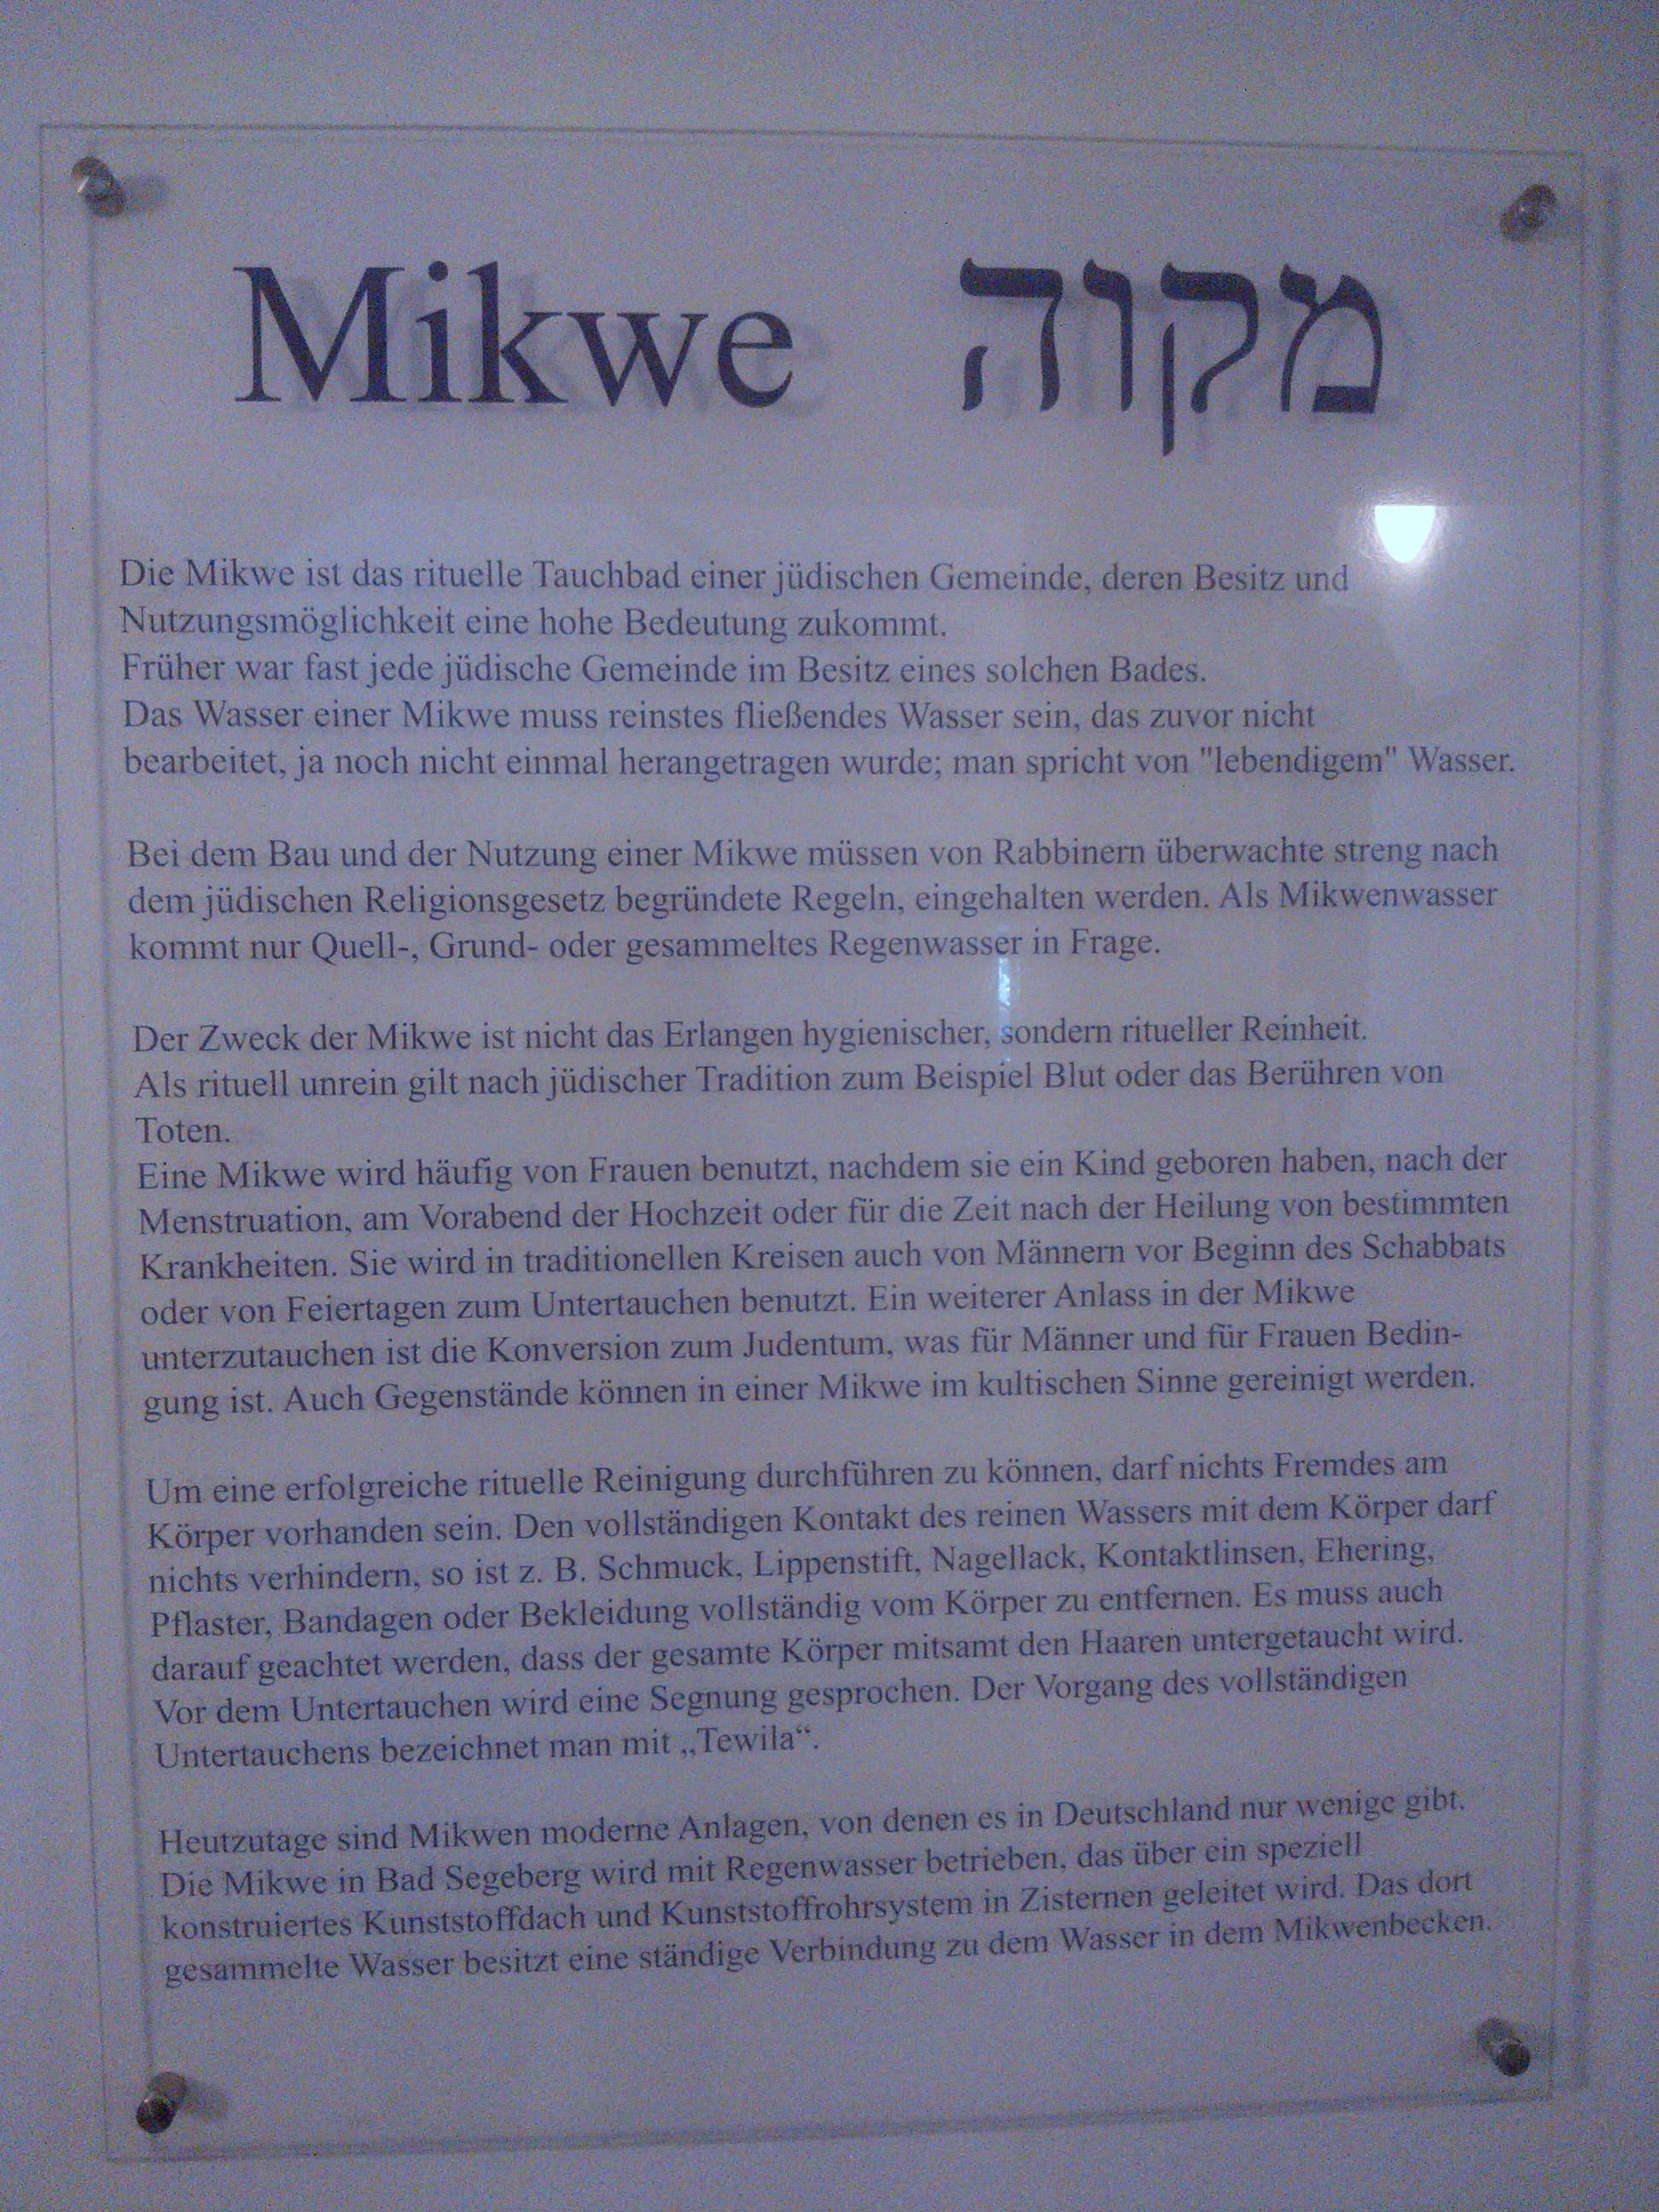 Mikwe in Bad Segeberg